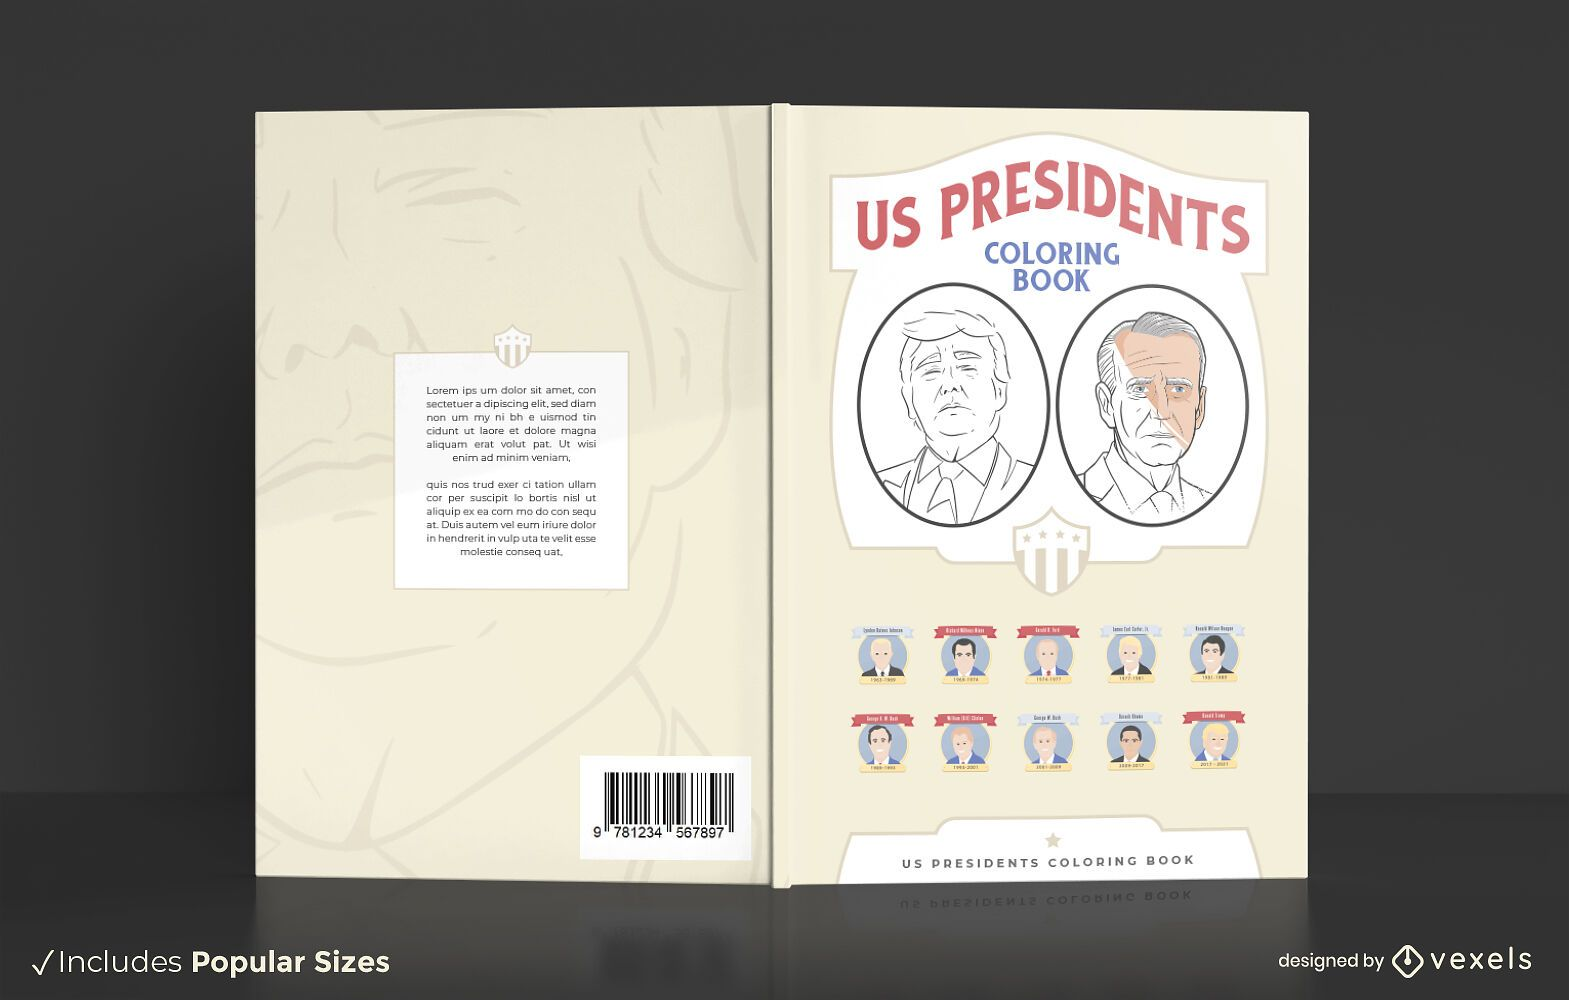 US presidents coloring book cover design